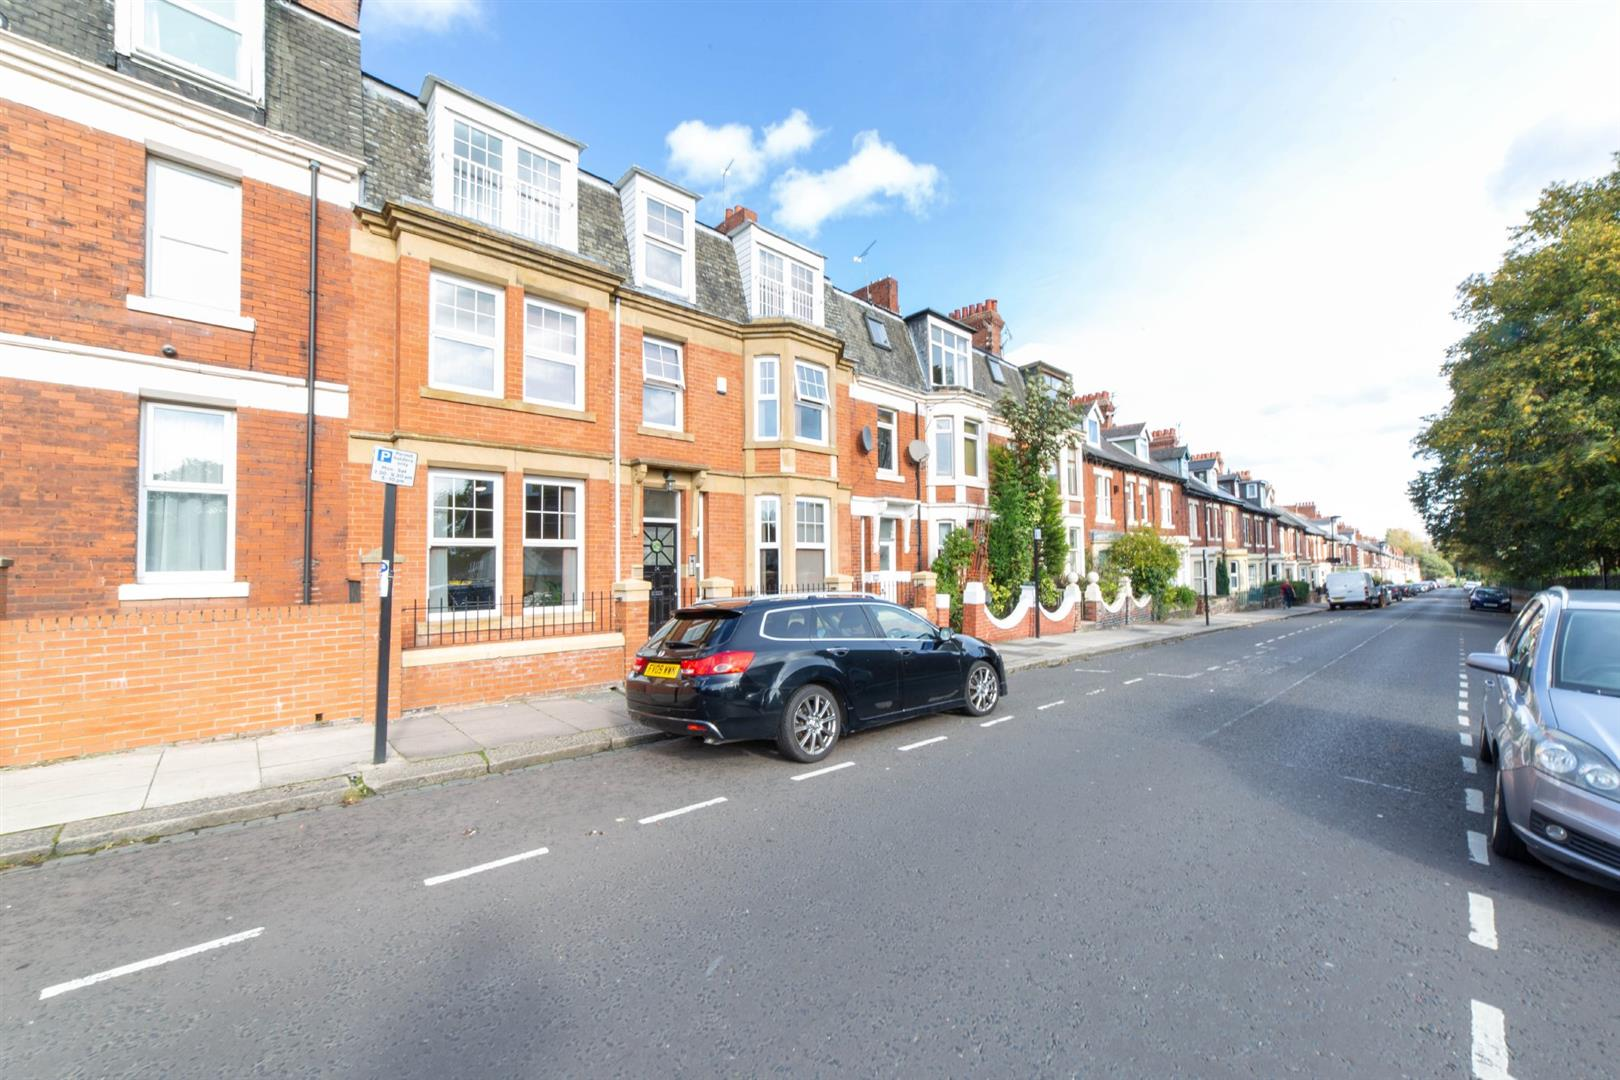 8 bed terraced house to rent in Newcastle Upon Tyne, NE2 1JS 4